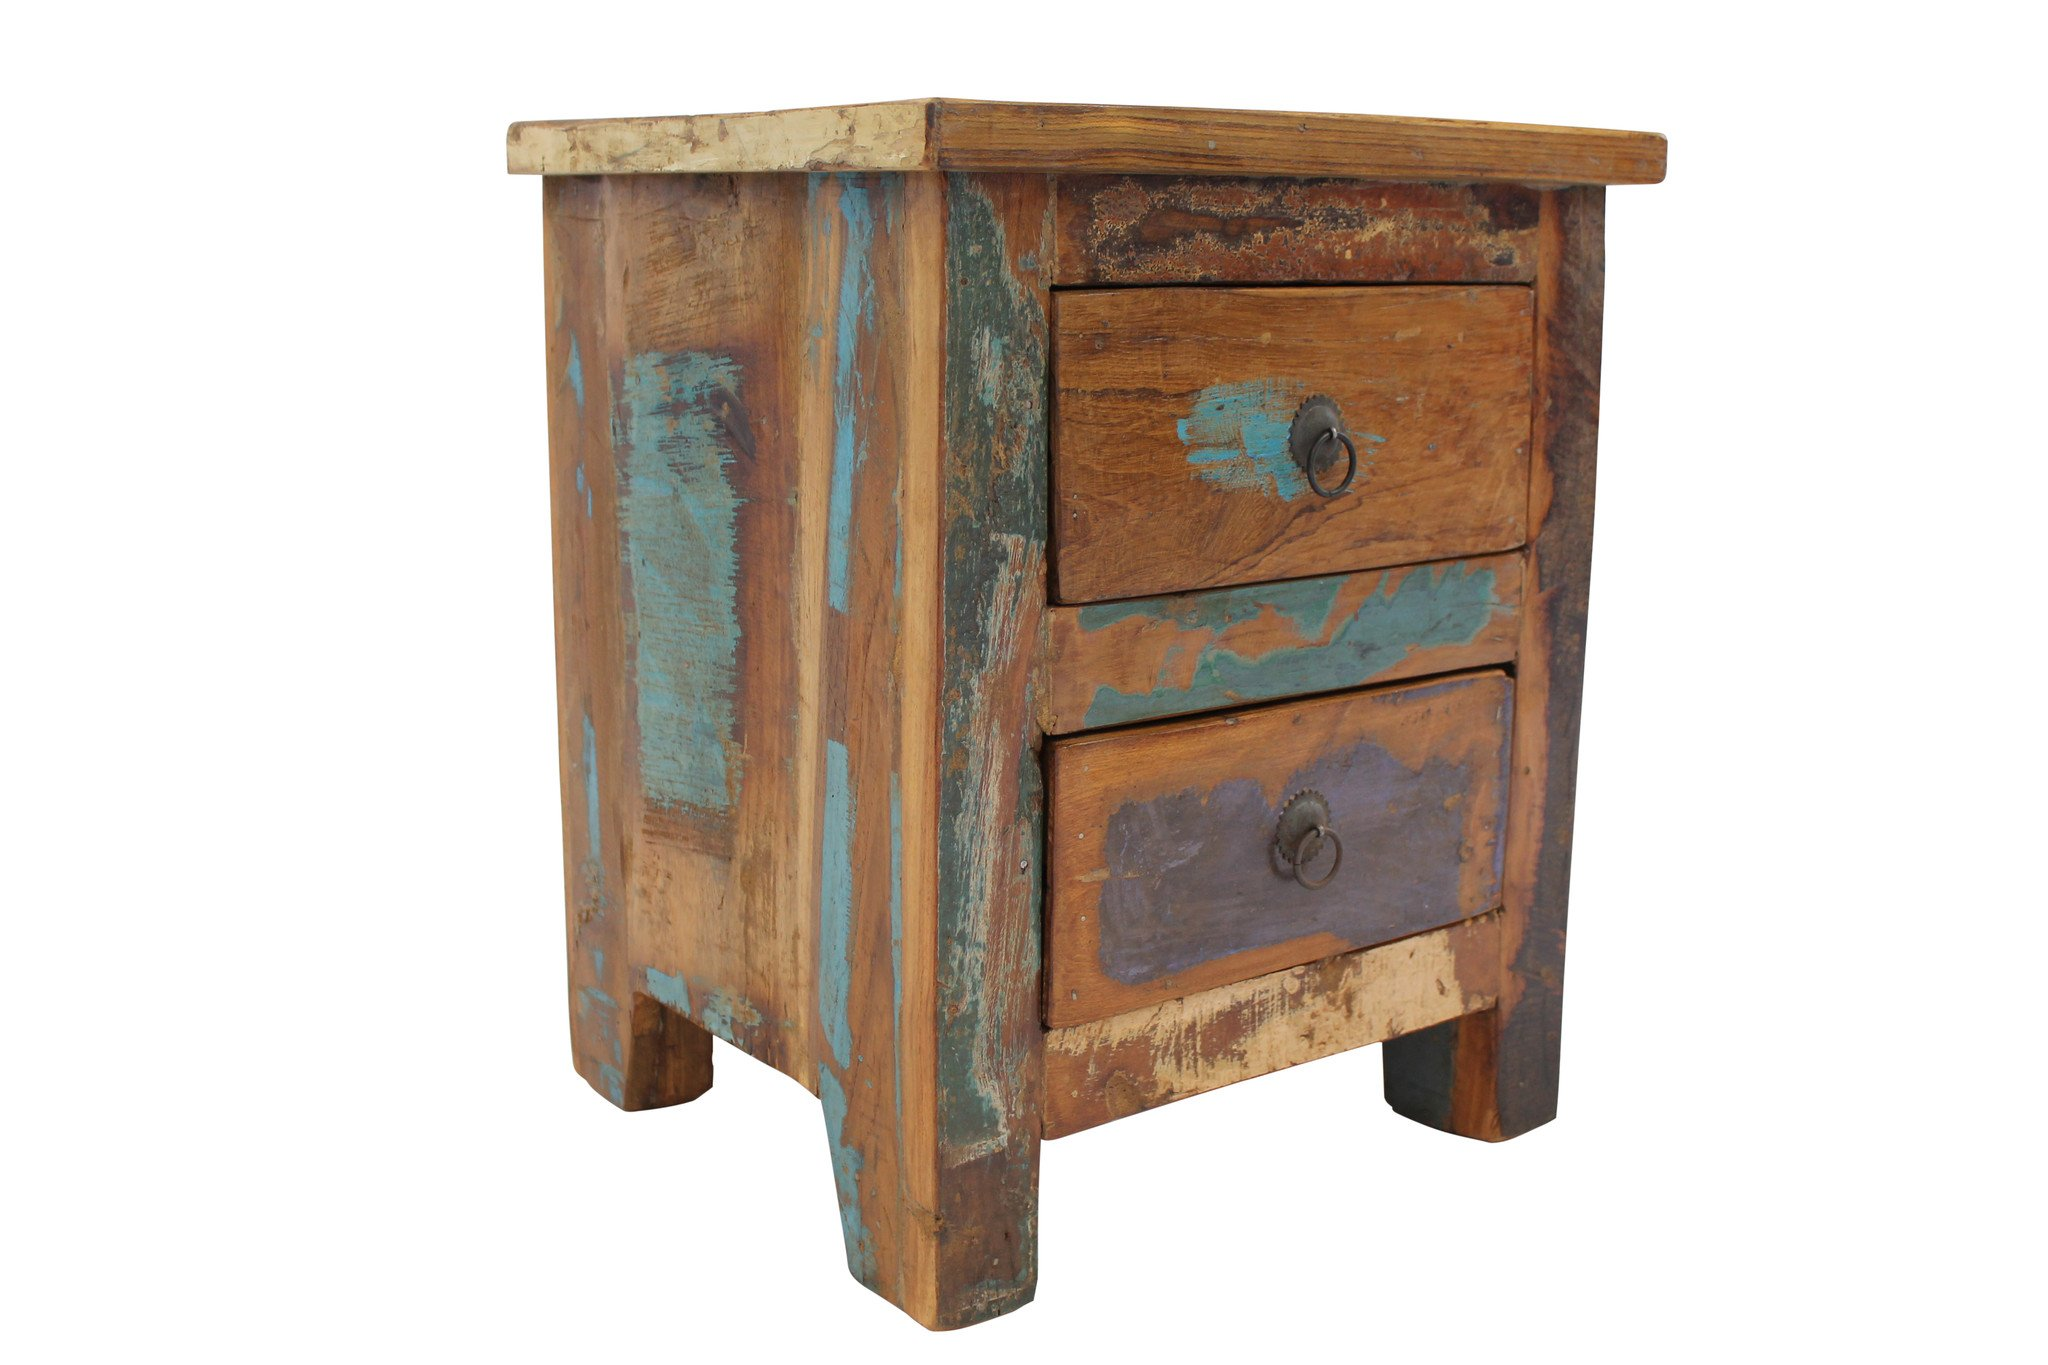 furniture beauty home with reclaimed wood side table end tables pottery barn rustic accent griffin nesting salvage flower pearl drum seat small glass lamp antique mission oak high